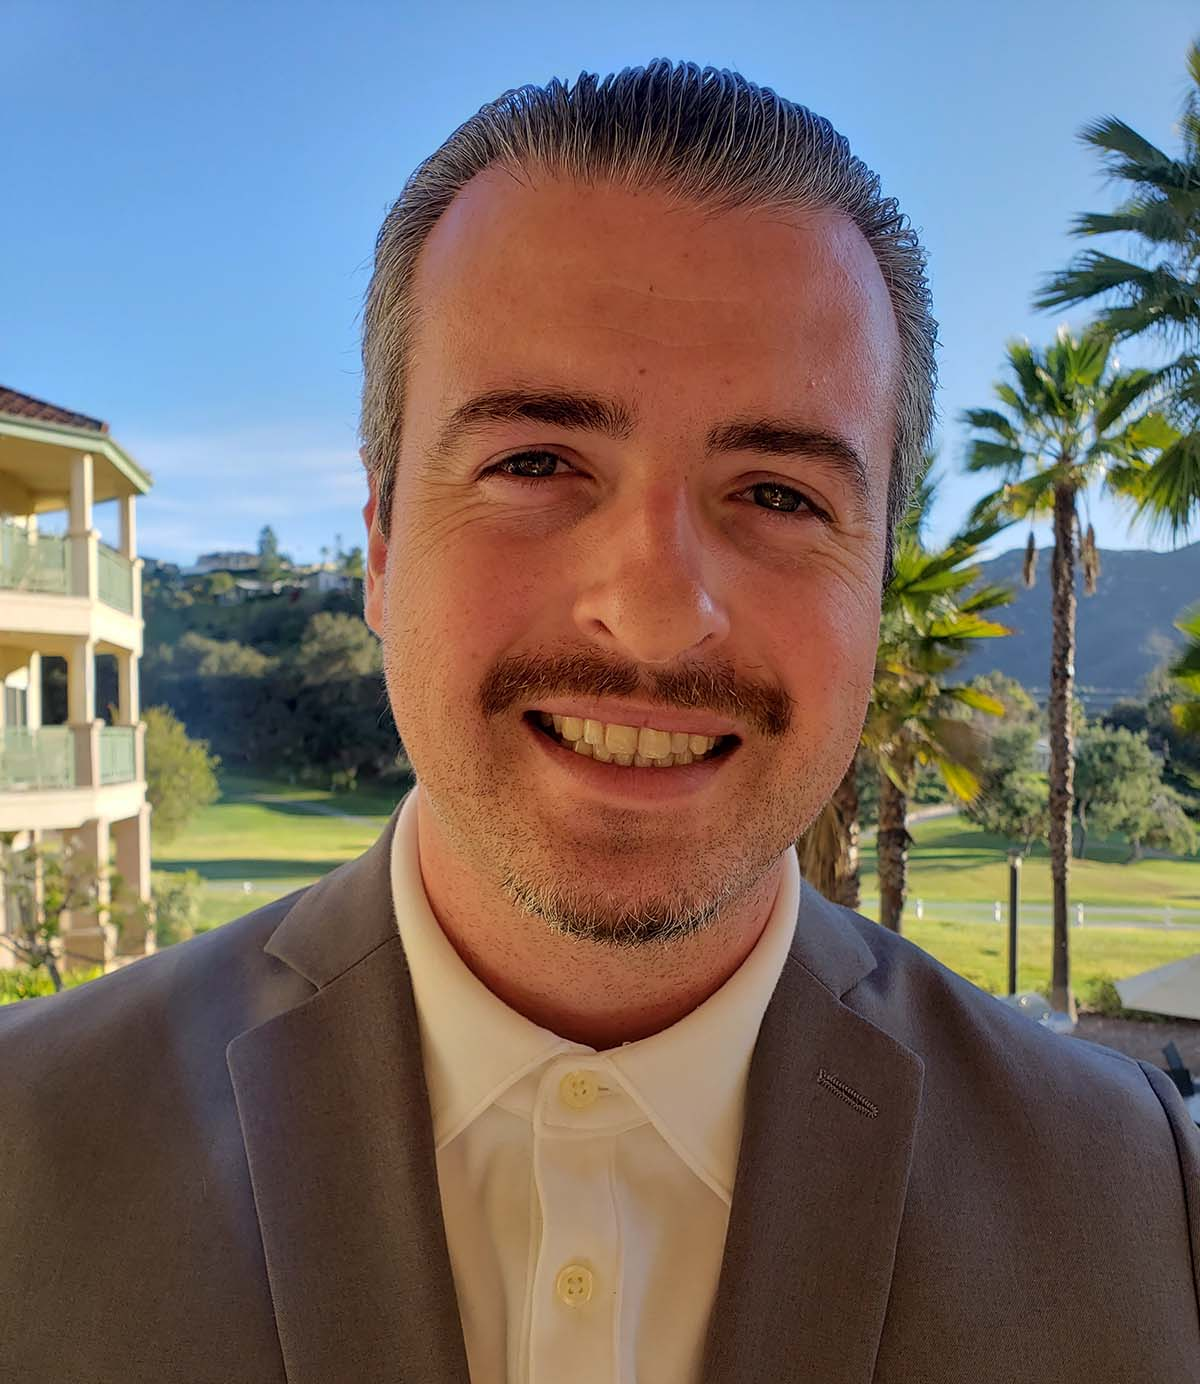 Asher Stefani, founder and CEO or LGFG